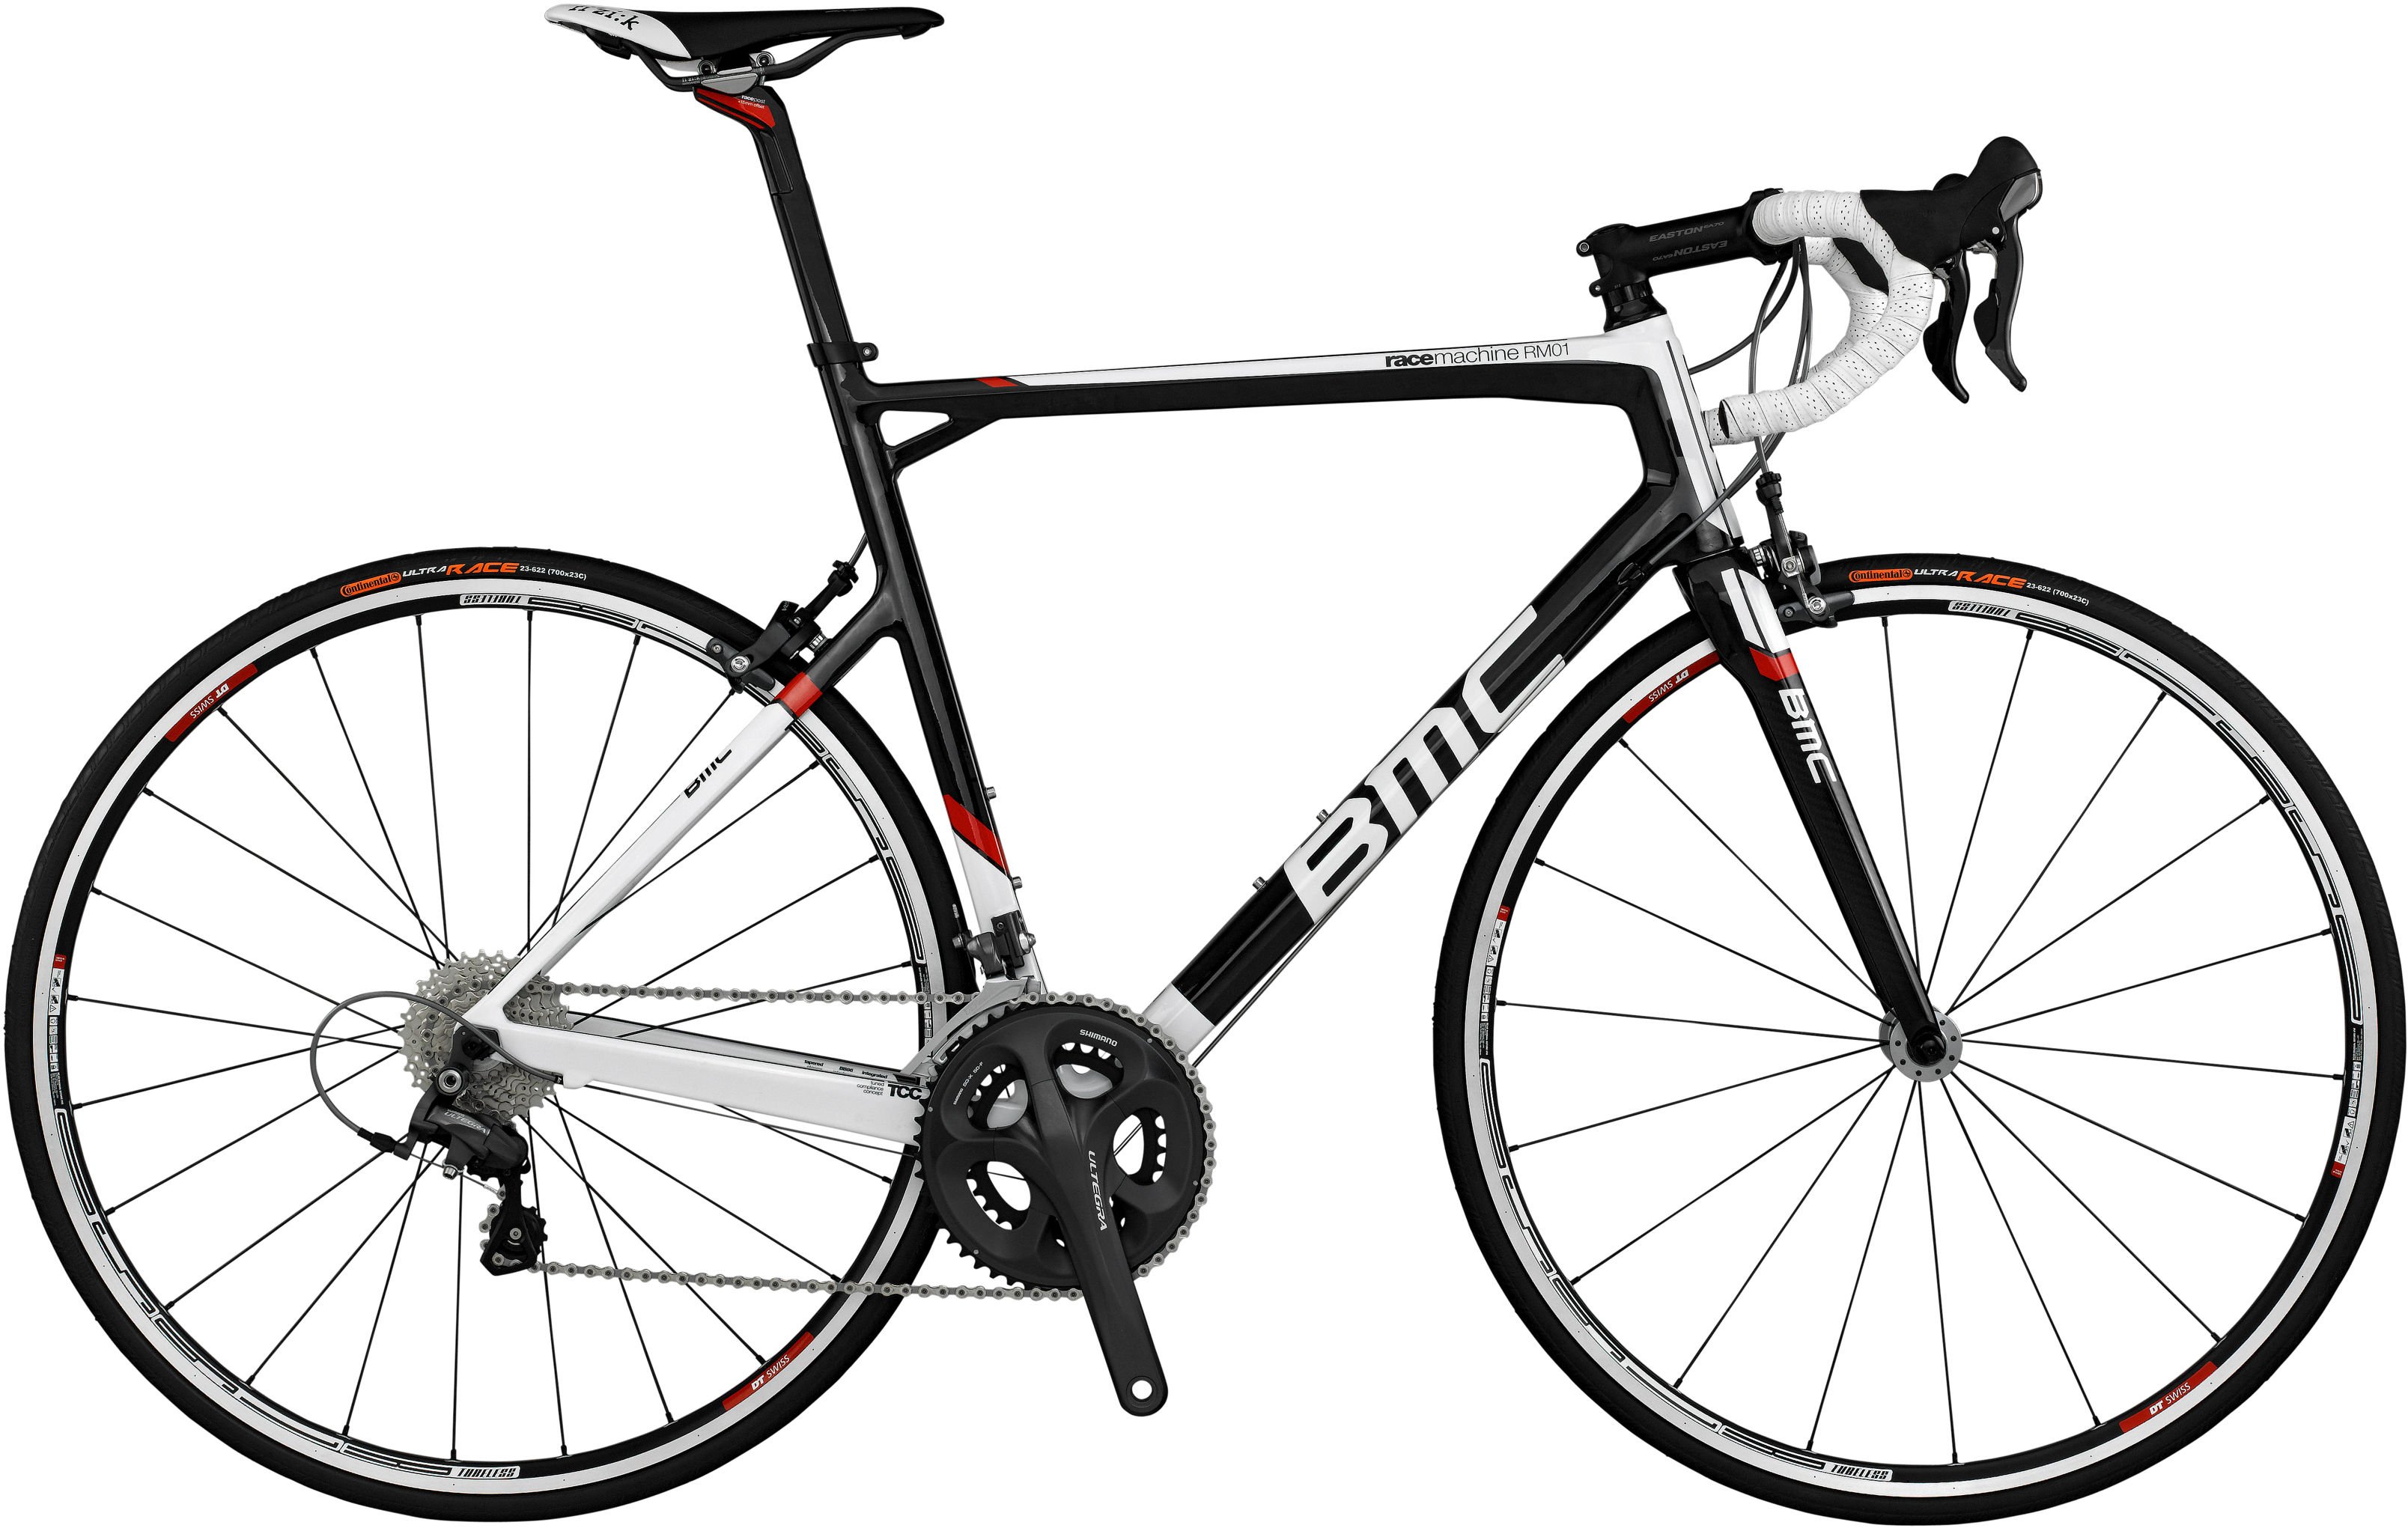 70f92cee0b9 BMC Racemachine RM01 Ultegra Compact 2013 review - The Bike List